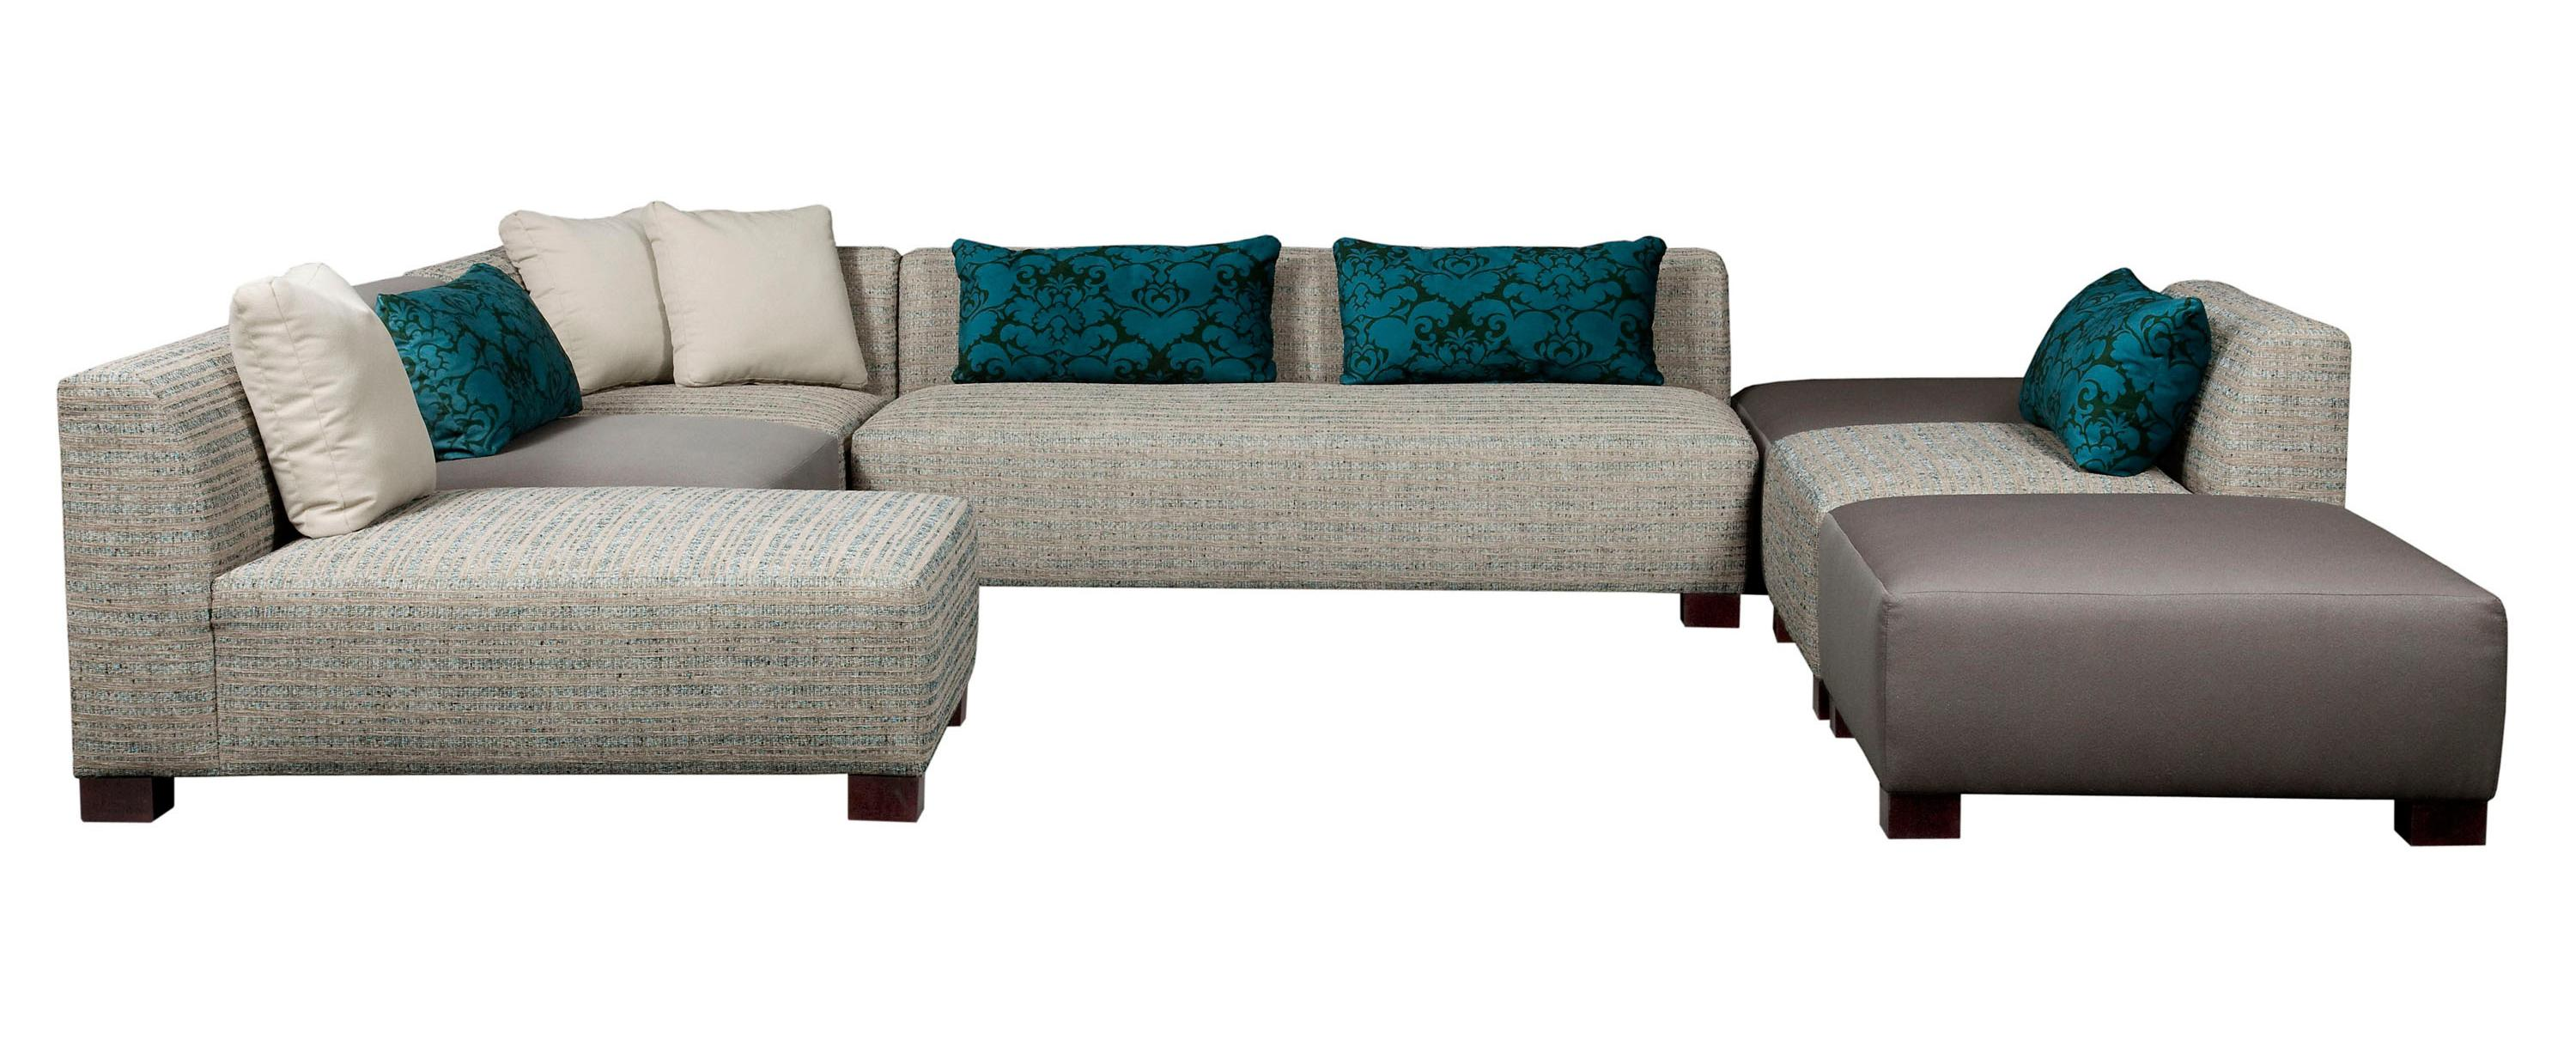 Broyhill Furniture Milo Contemporary Sectional Sofa with Low Seat